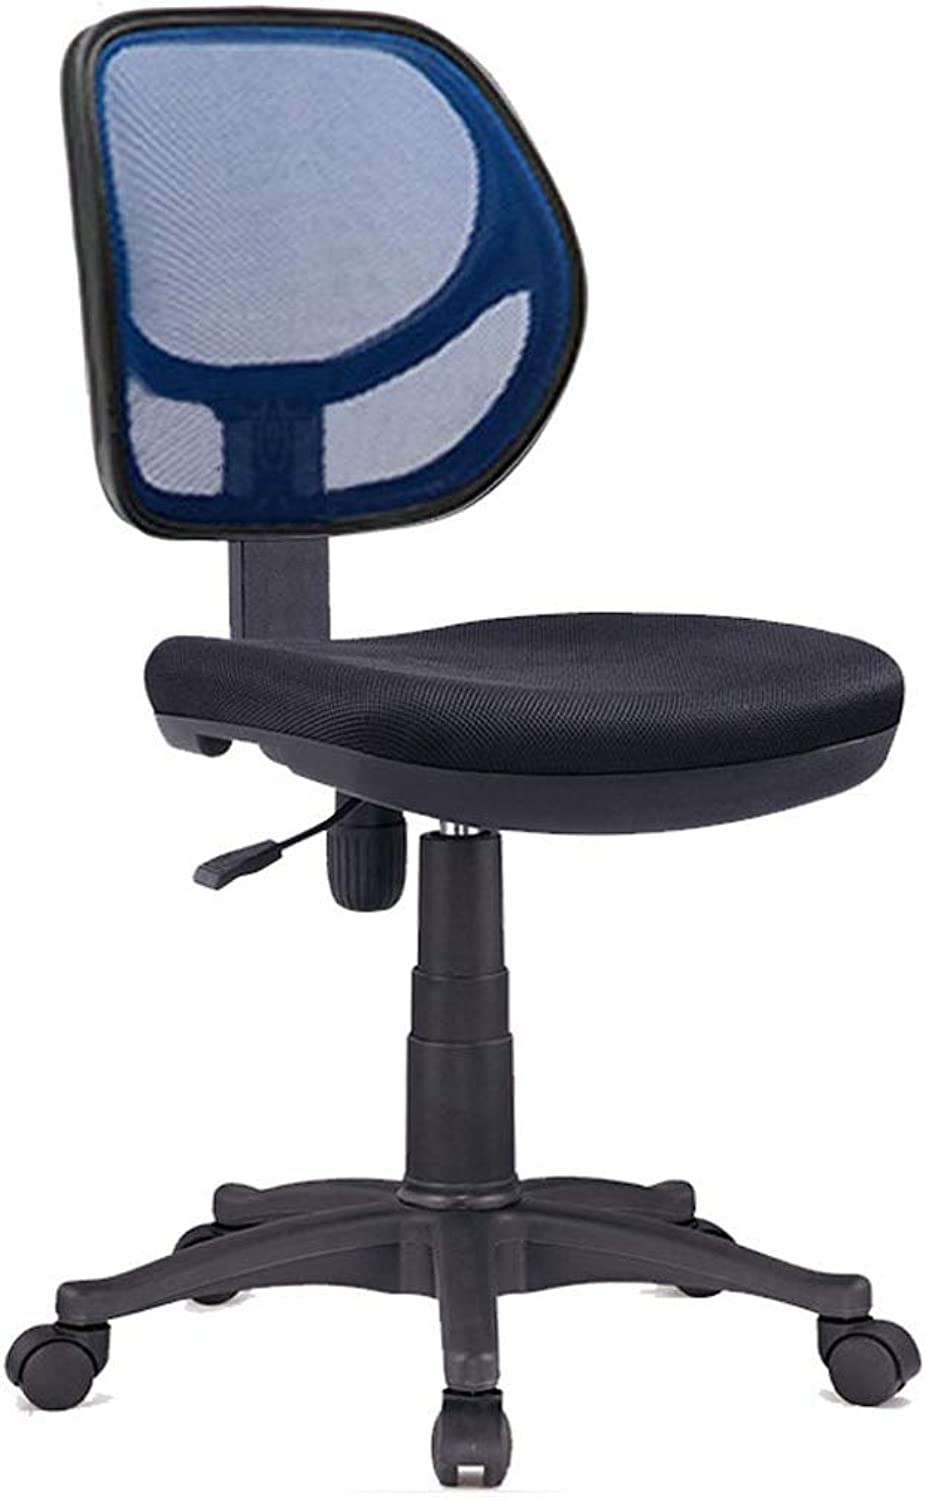 Mesh High Back Executive Adjustable Swivel Office Chair Lumbar Support Computer Desk Chair Training Chair-Black (color   bluee)